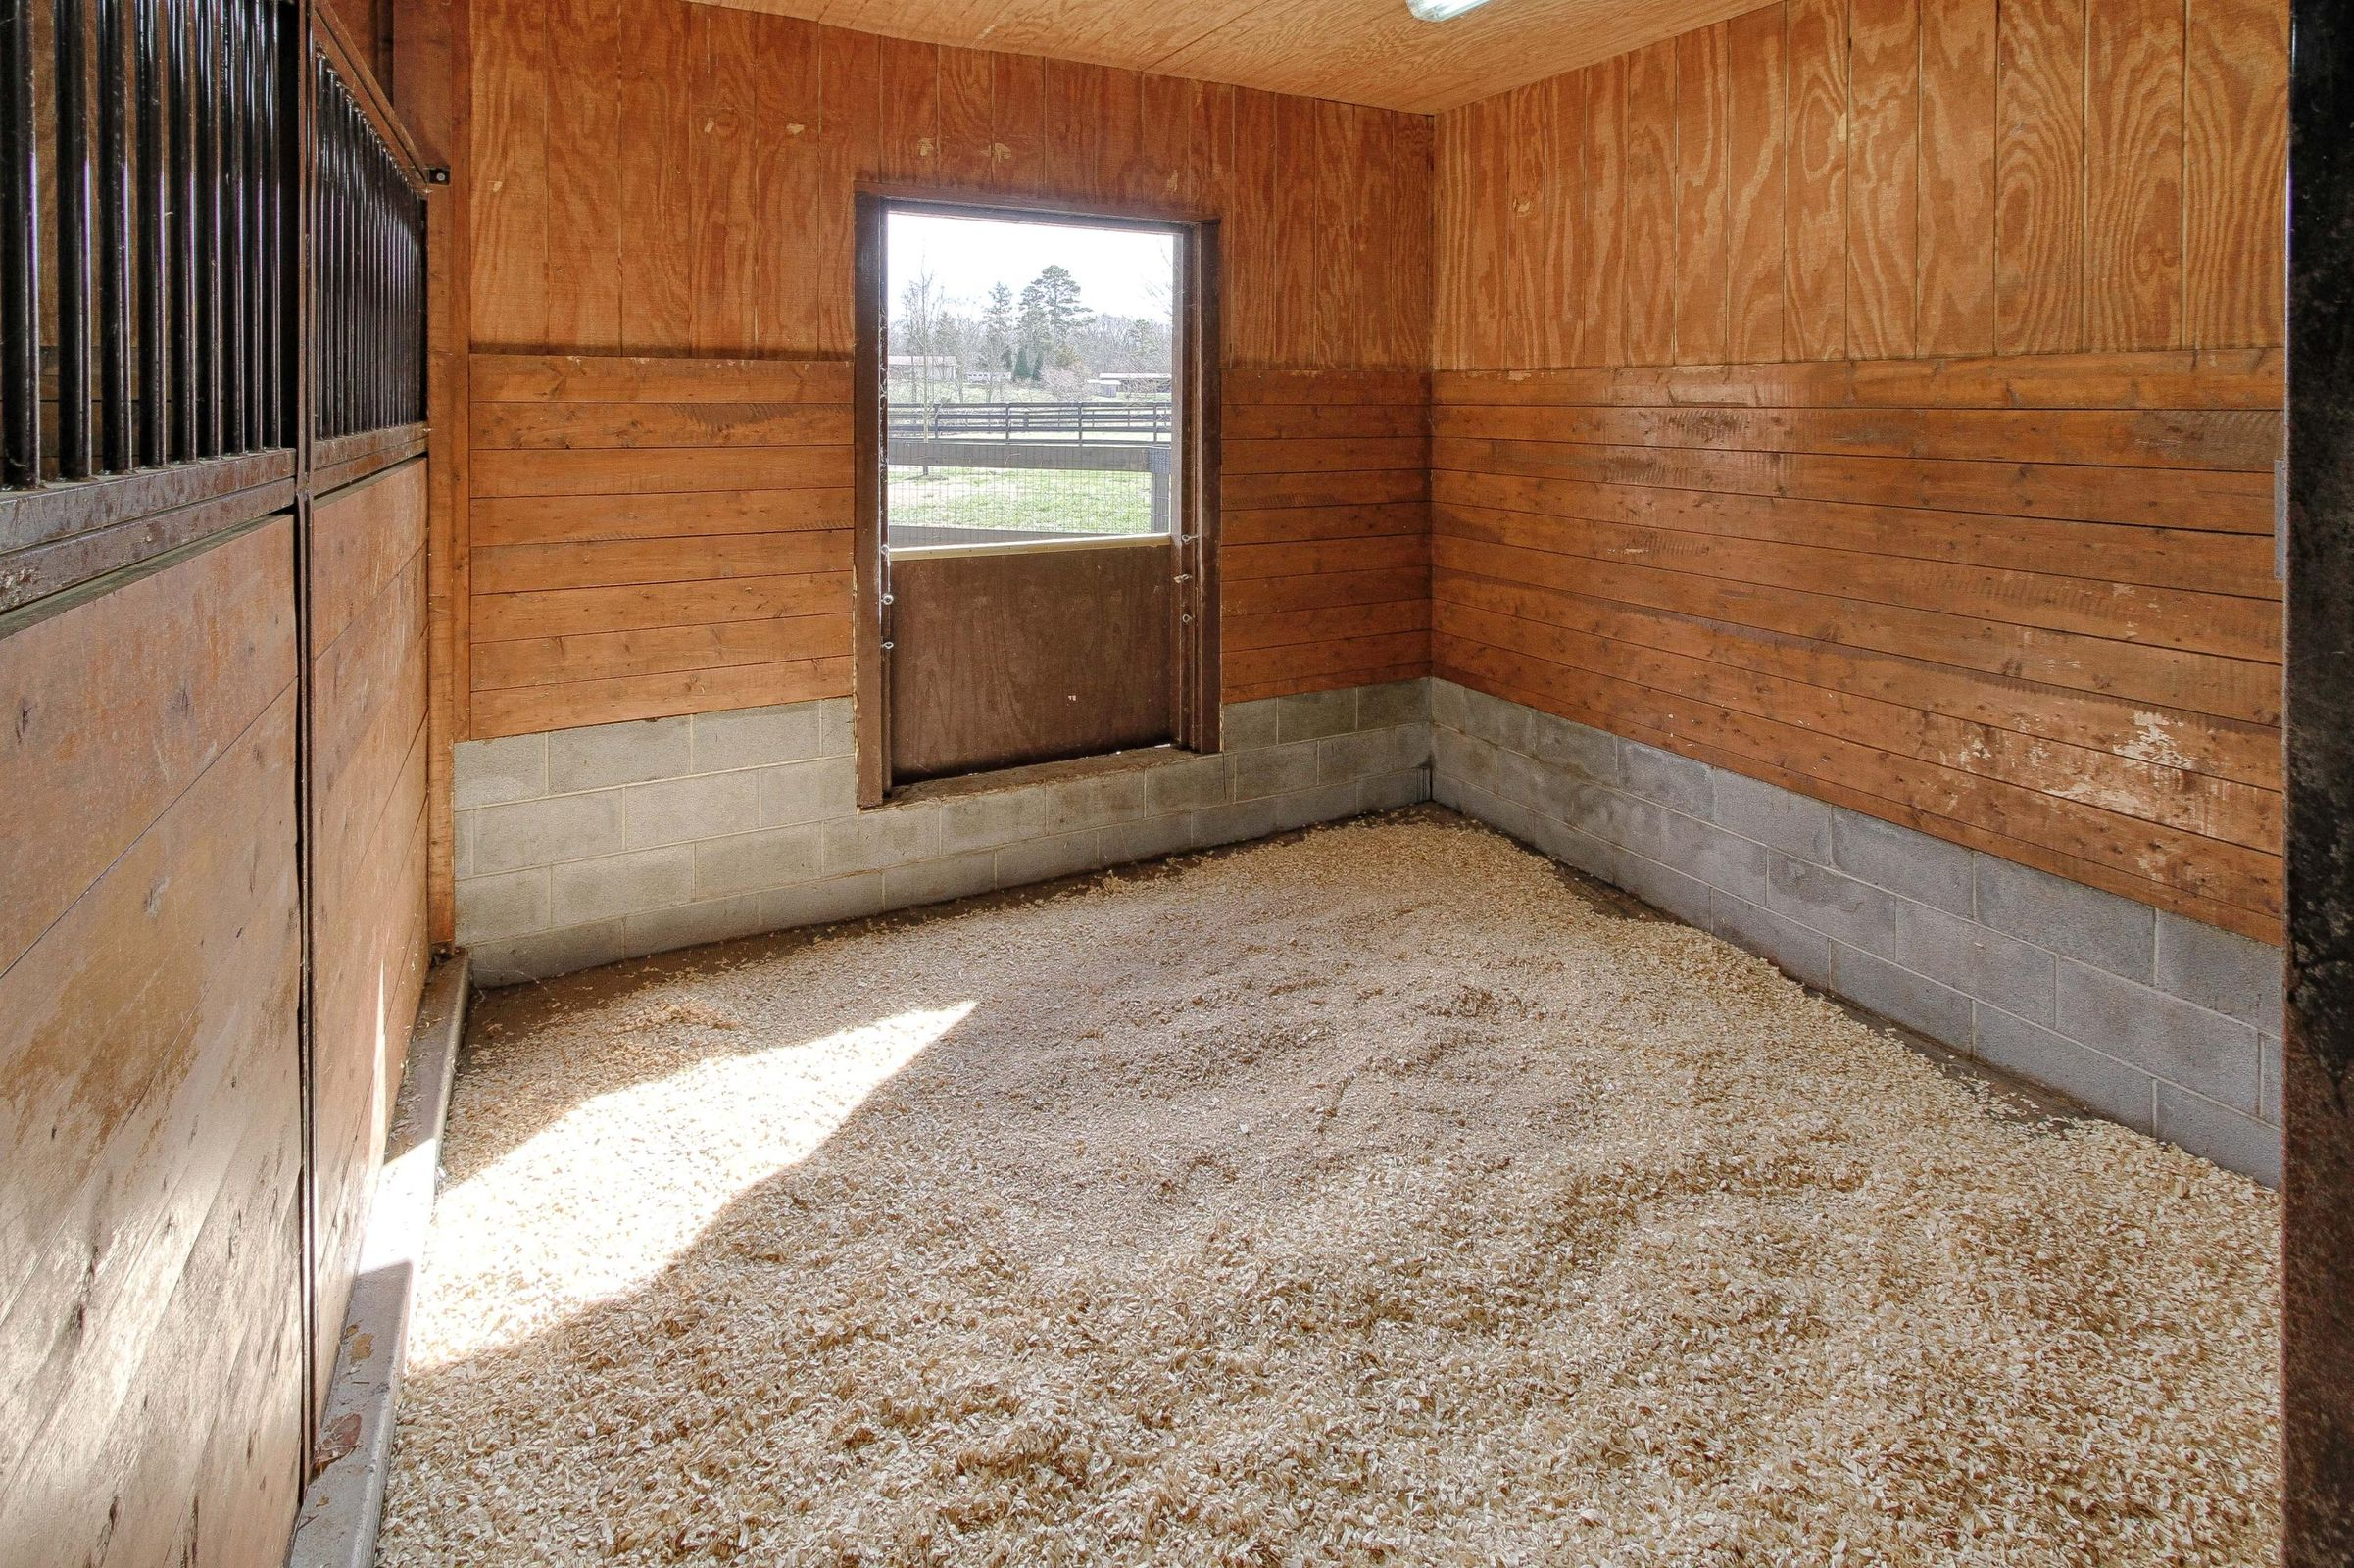 stall area